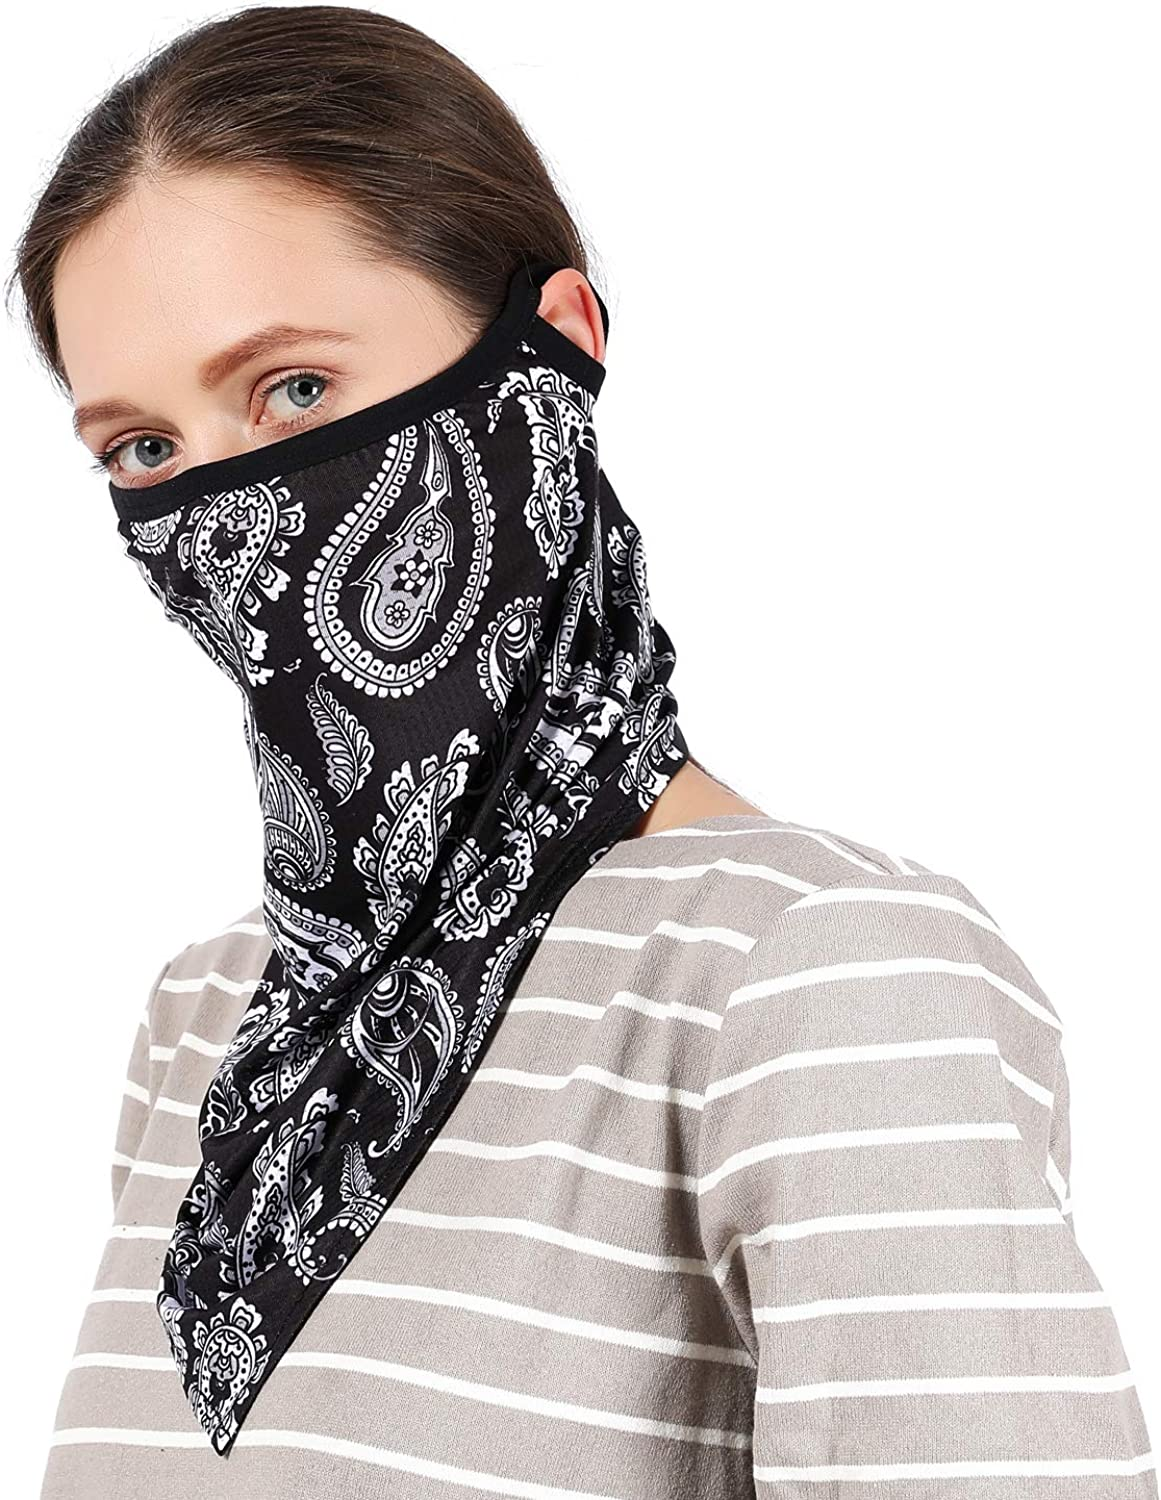 REACH STAR Fishing Face Shield Breathable Summer Balaclava Neck Gaiter Triangle Scarf Women UV Protection Cooling Full Face Cover Bandana for Cycling Outdoor Running (RS-SJJ-2)